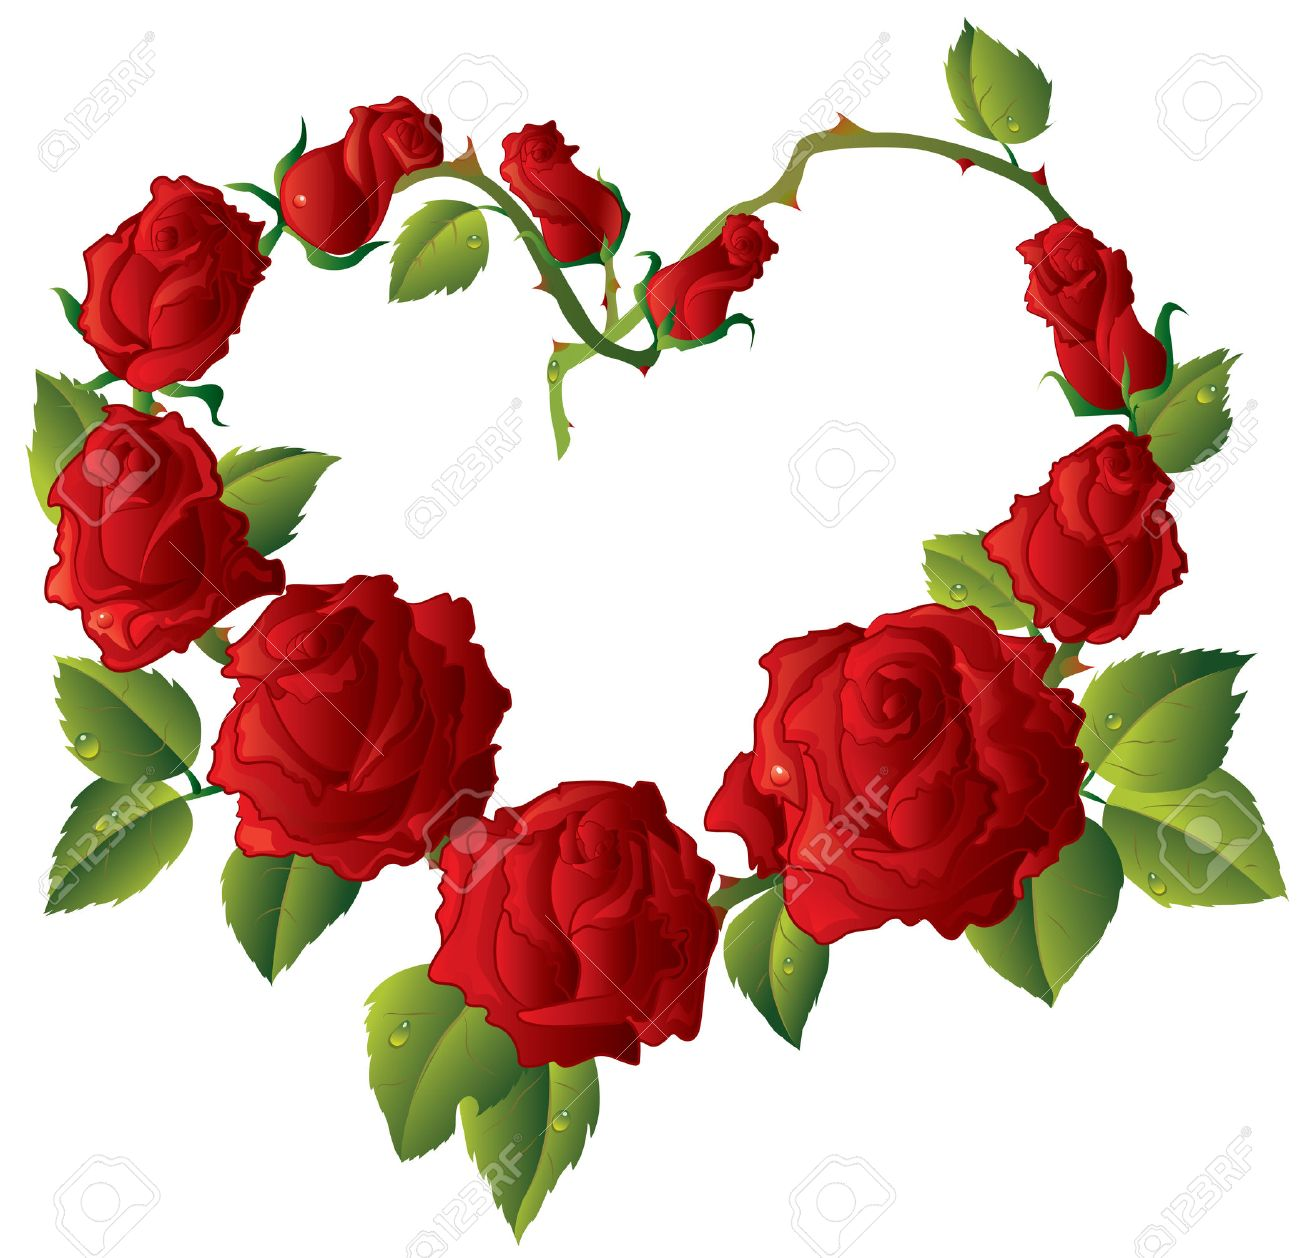 Heart shape framework made of beautiful red roses royalty free heart shape framework made of beautiful red roses stock vector 8638952 izmirmasajfo